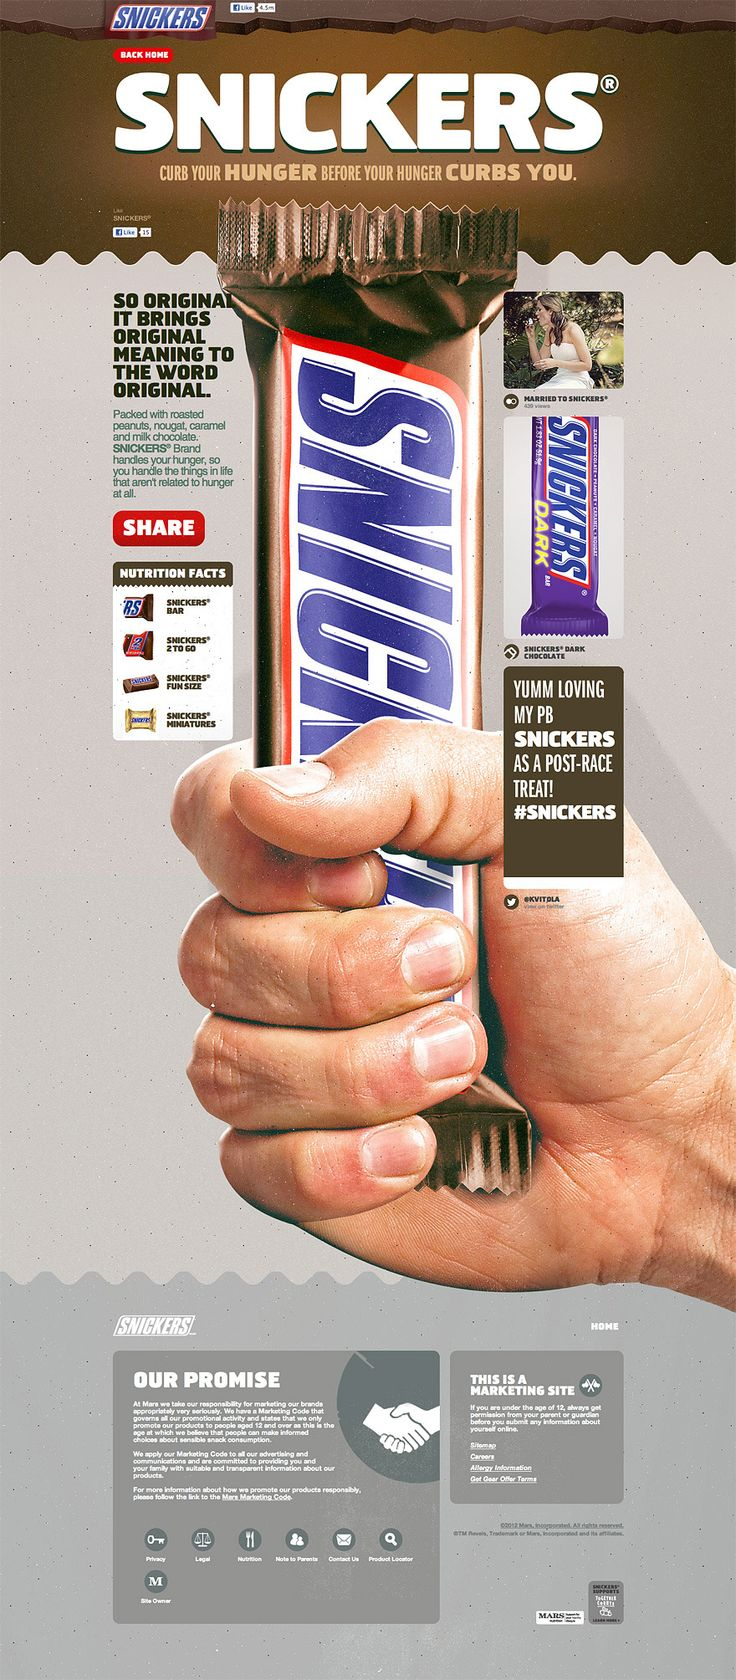 Snickers.com | #webdesign #it #web #design #layout #userinterface #website #webdesign < repinned by www.BlickeDeeler.de | Take a look at www.WebsiteDesign-Hamburg.de